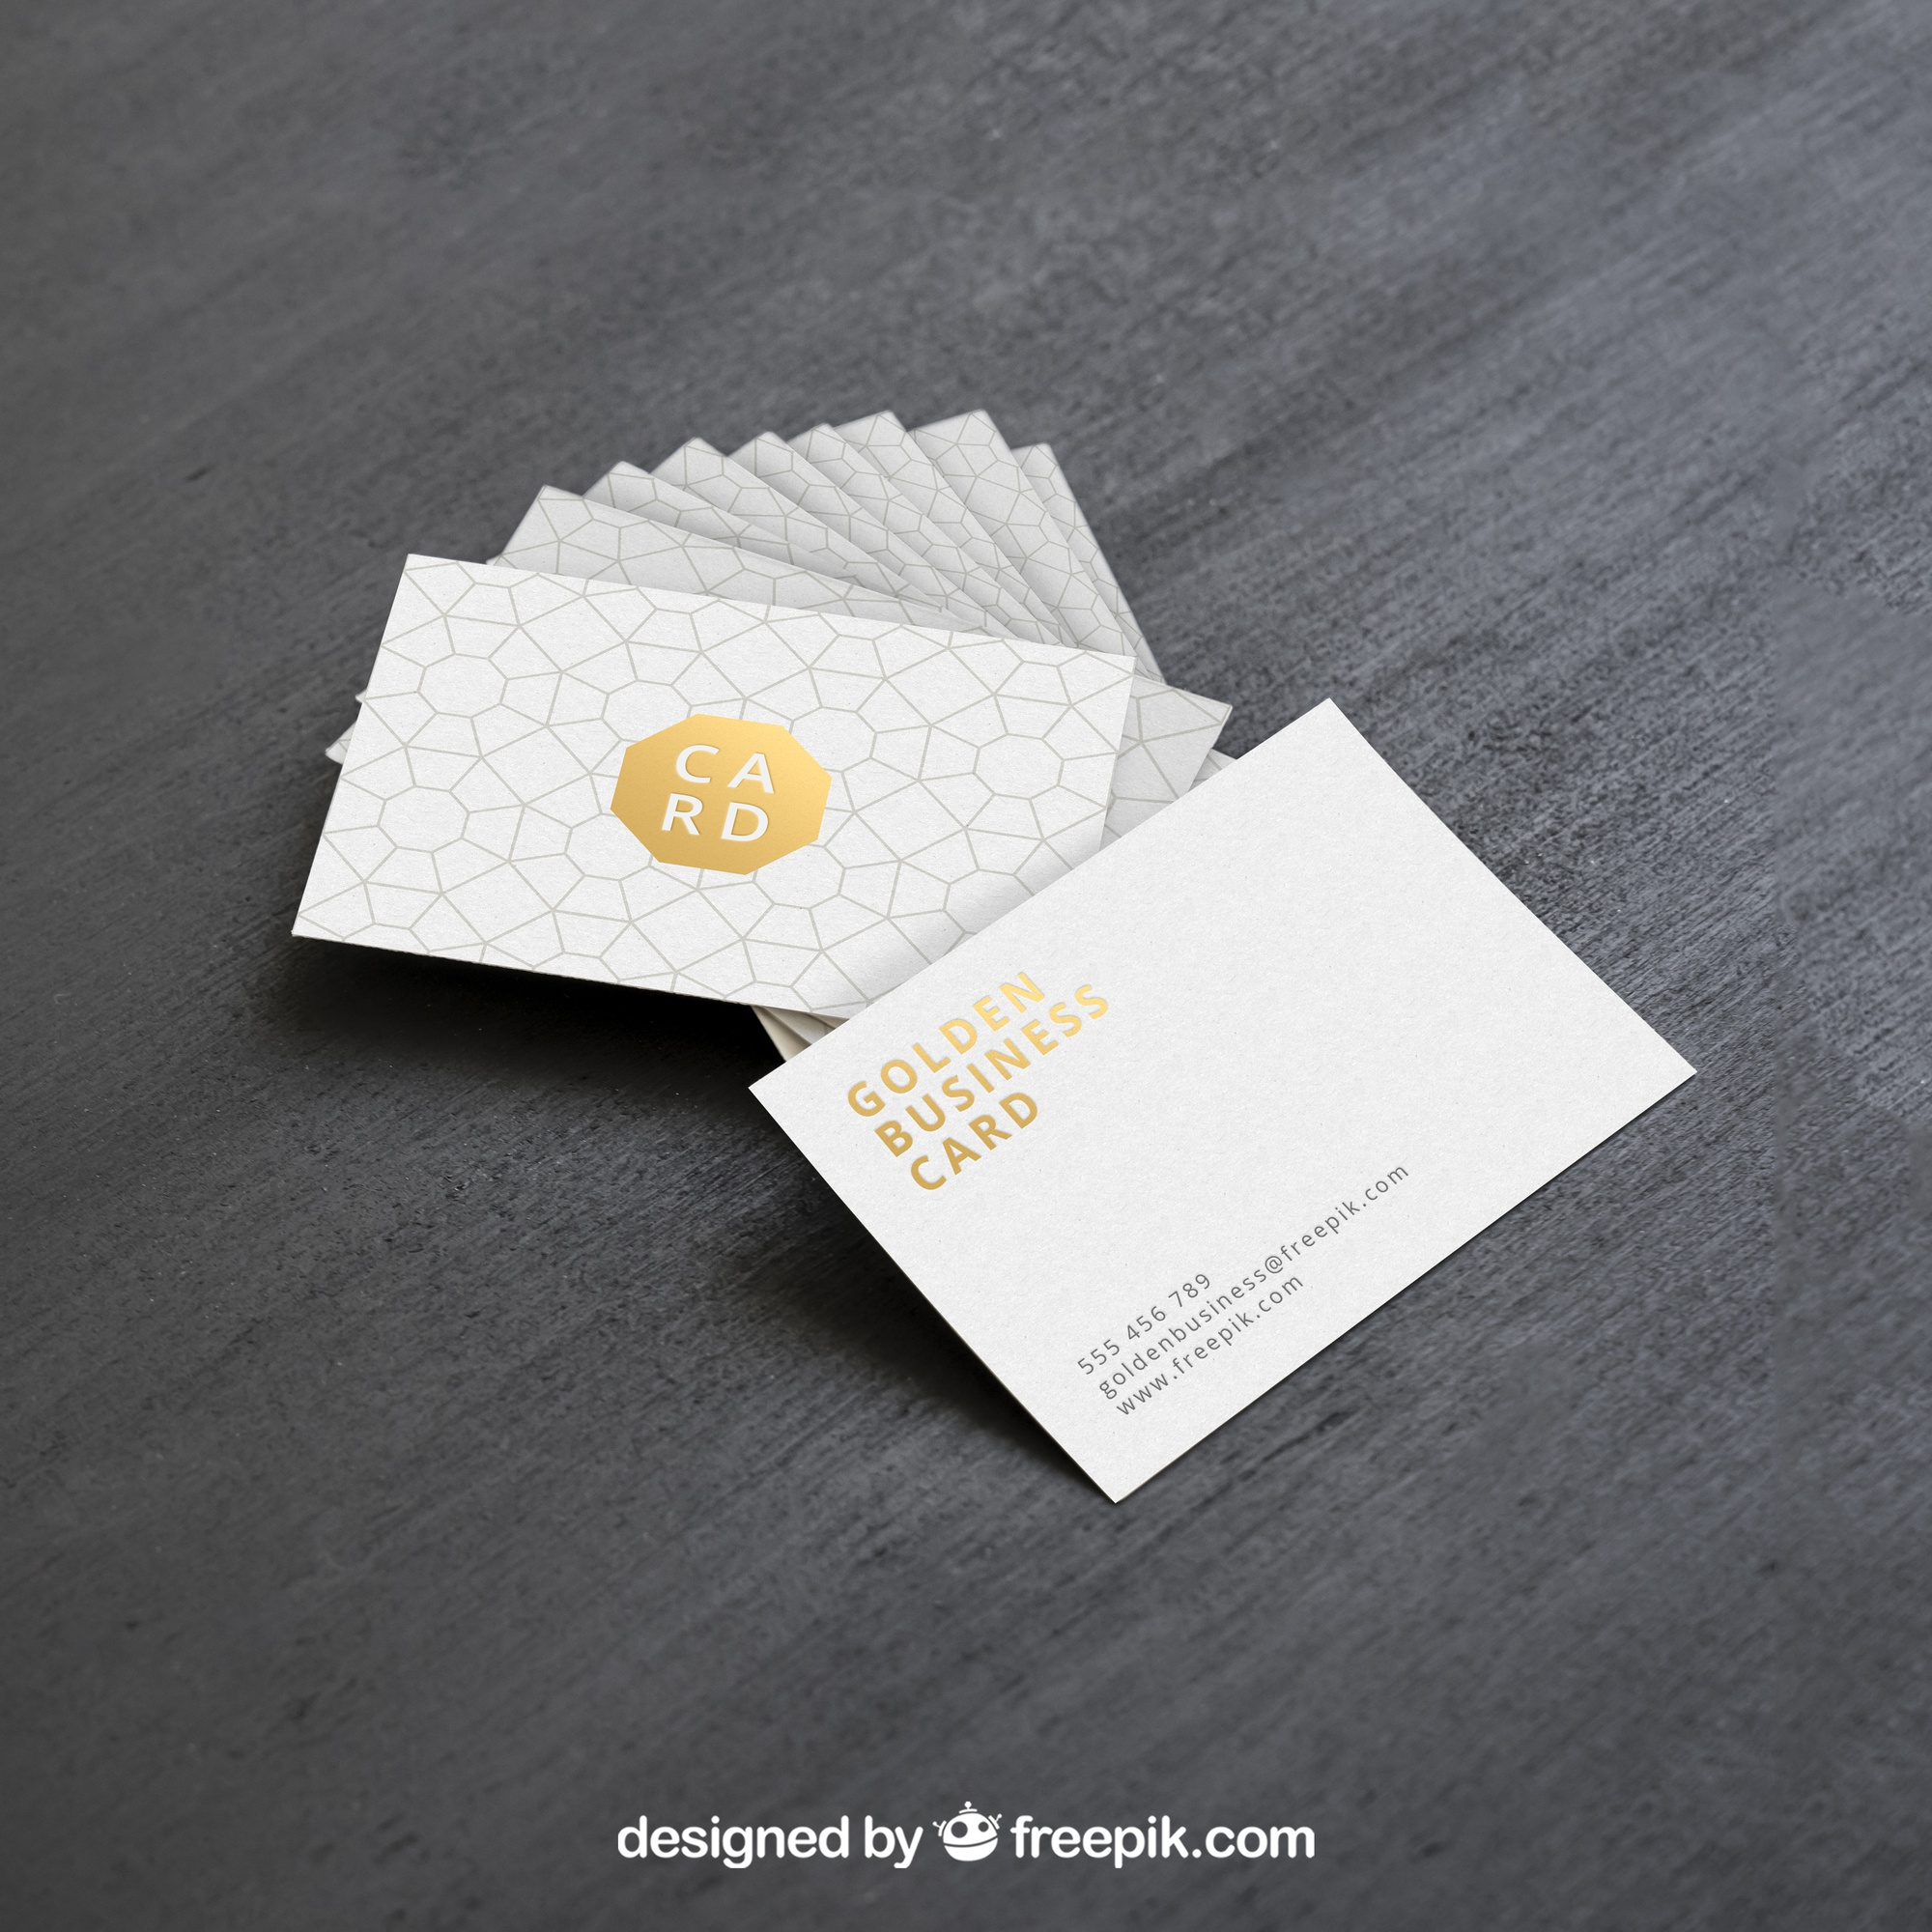 Cards psd 2300 free psd files golden business card mock up cheaphphosting Image collections